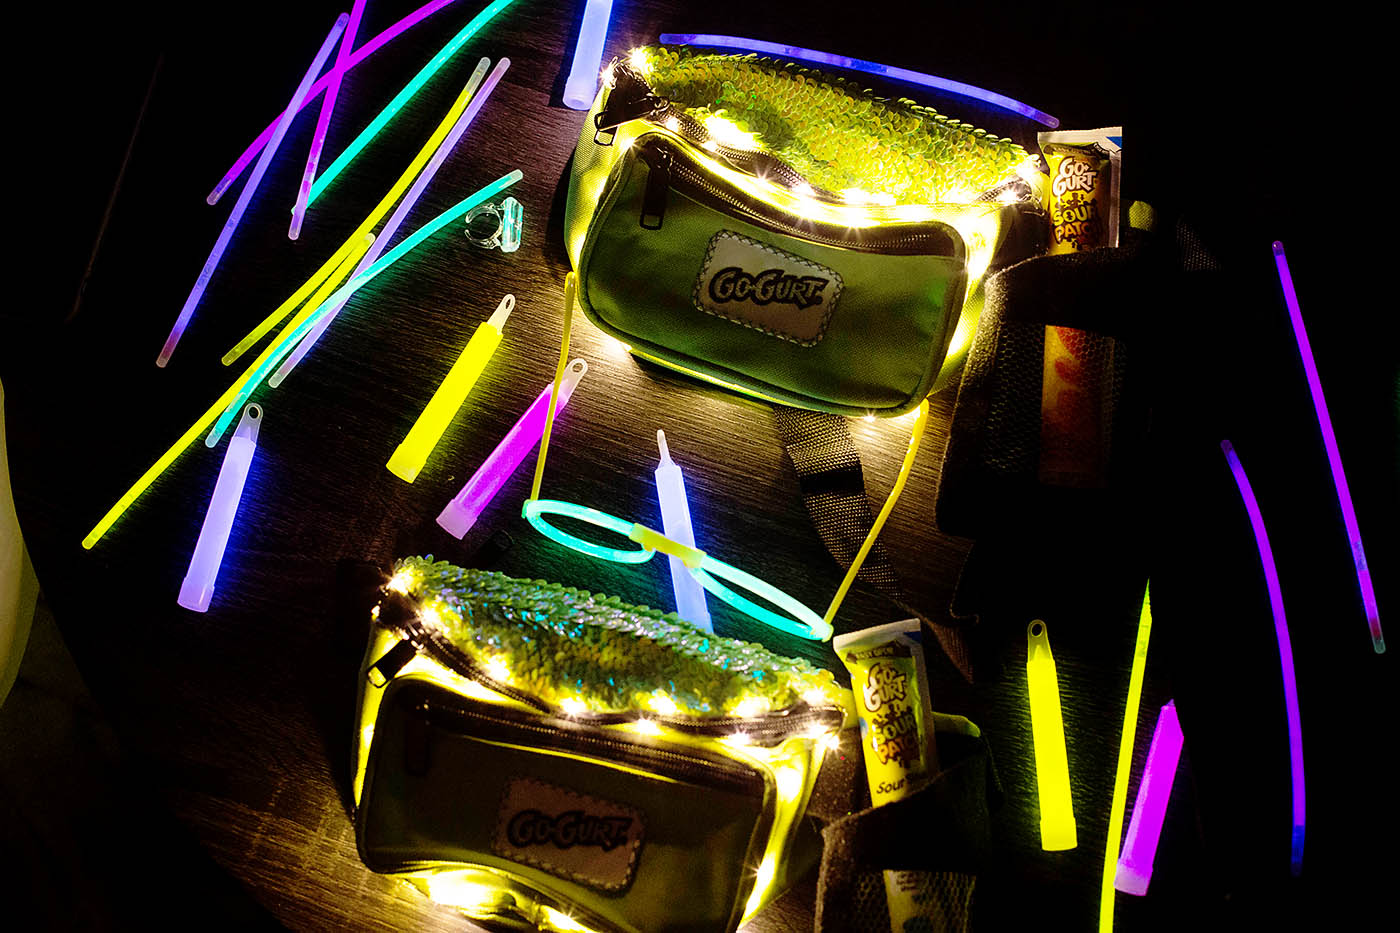 Fun GLOW party ideas and games